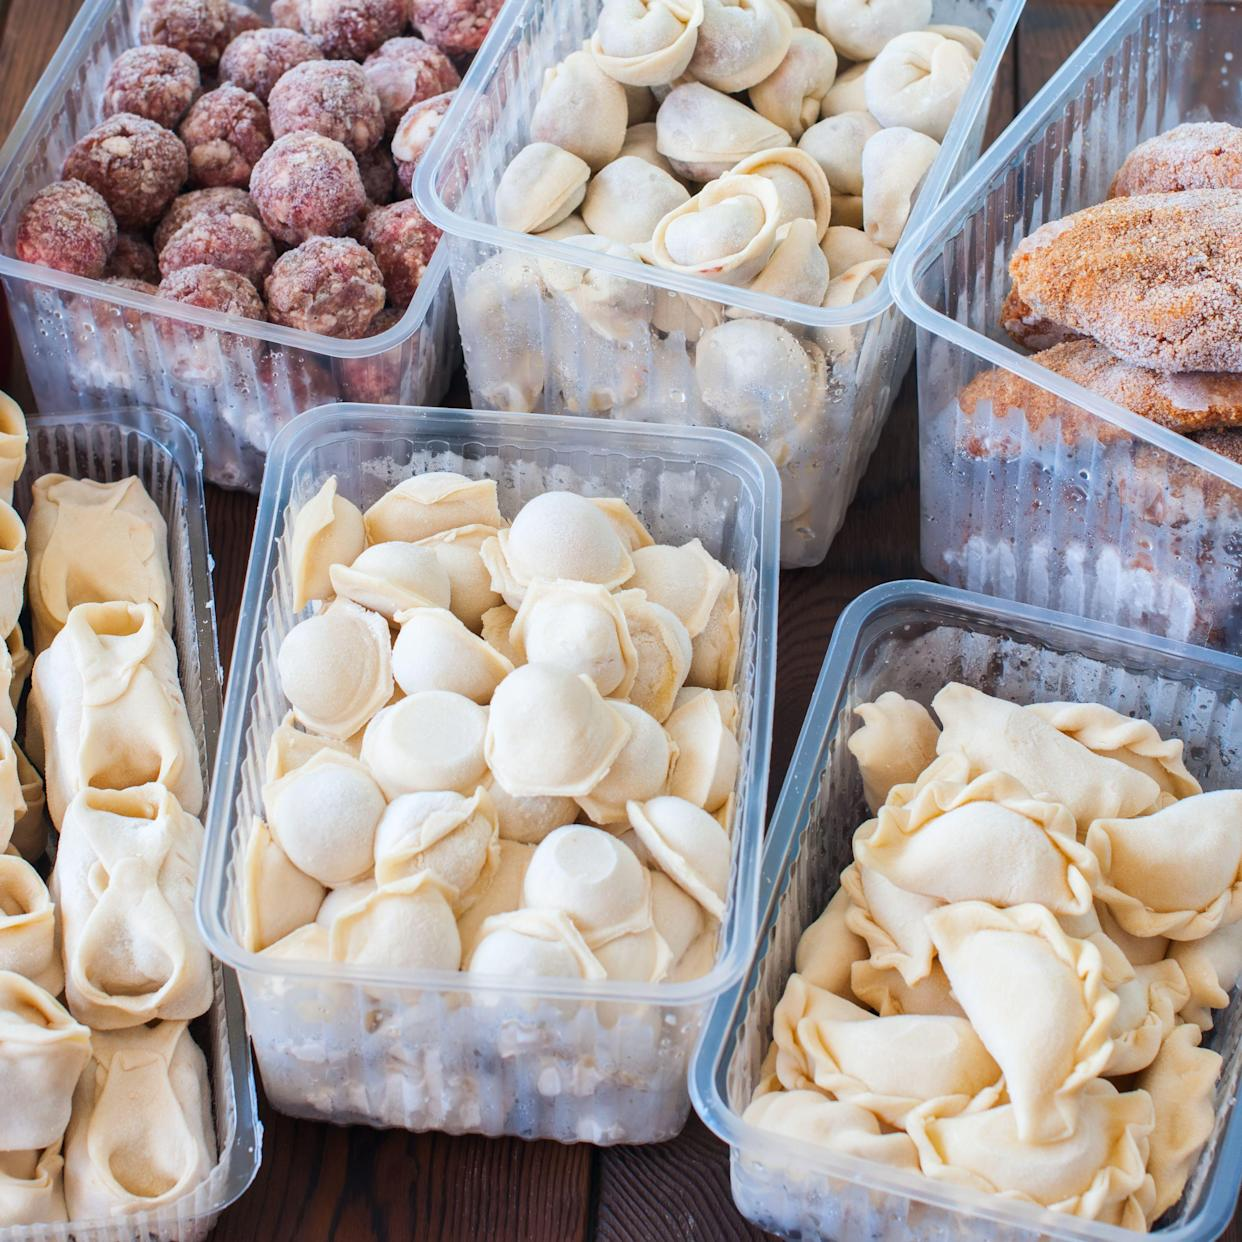 Assortment of Pocket items. Semifinished meatballs, dumplings, pierogi in plastic containers.